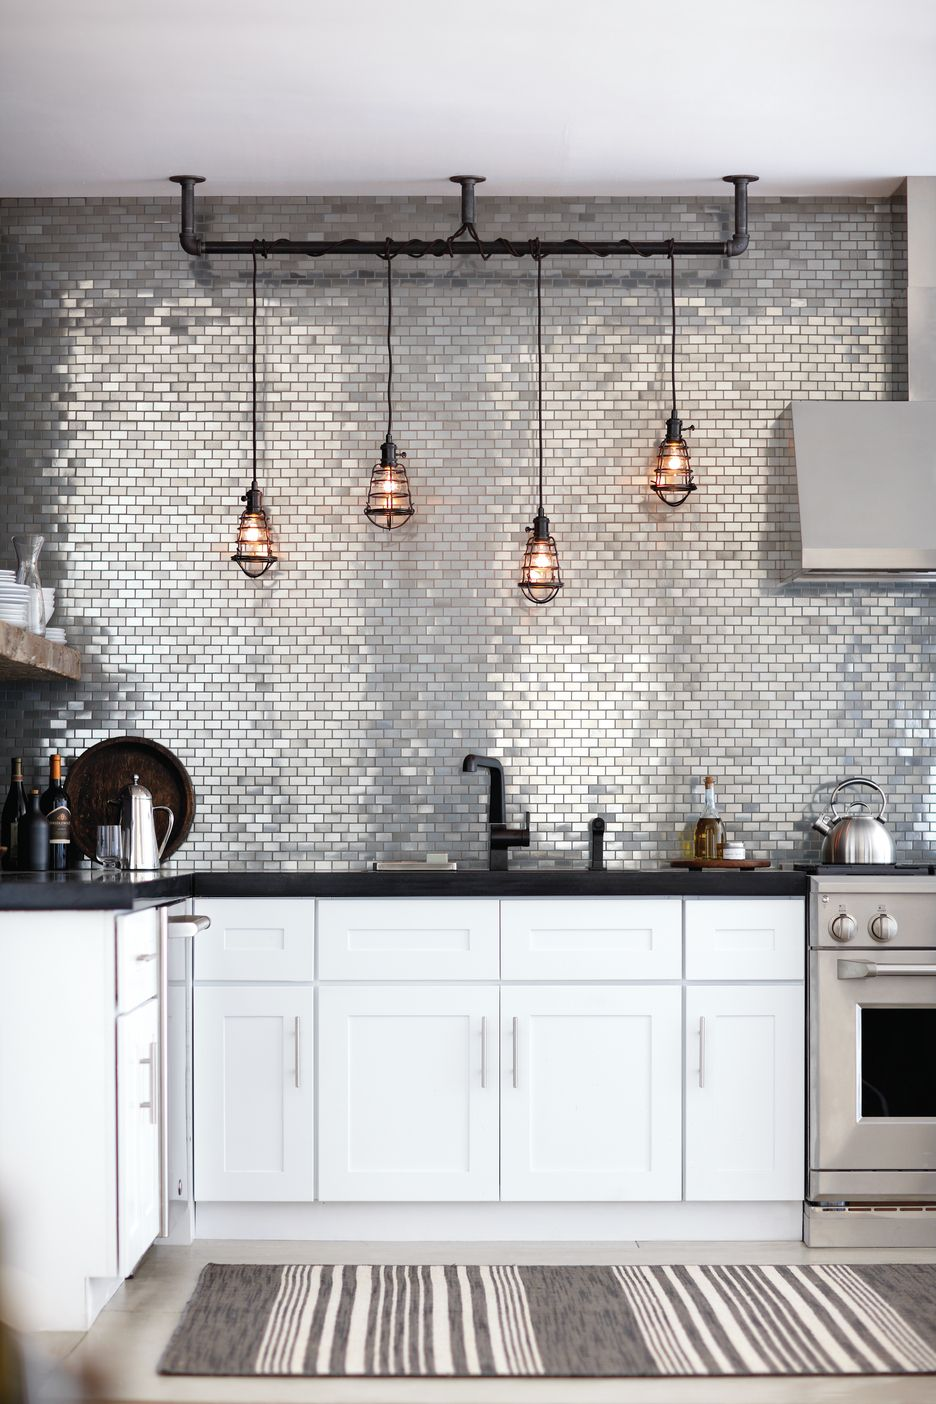 Upgrade Your Kitchen With These Amazing Backsplash Ideas Kitchen